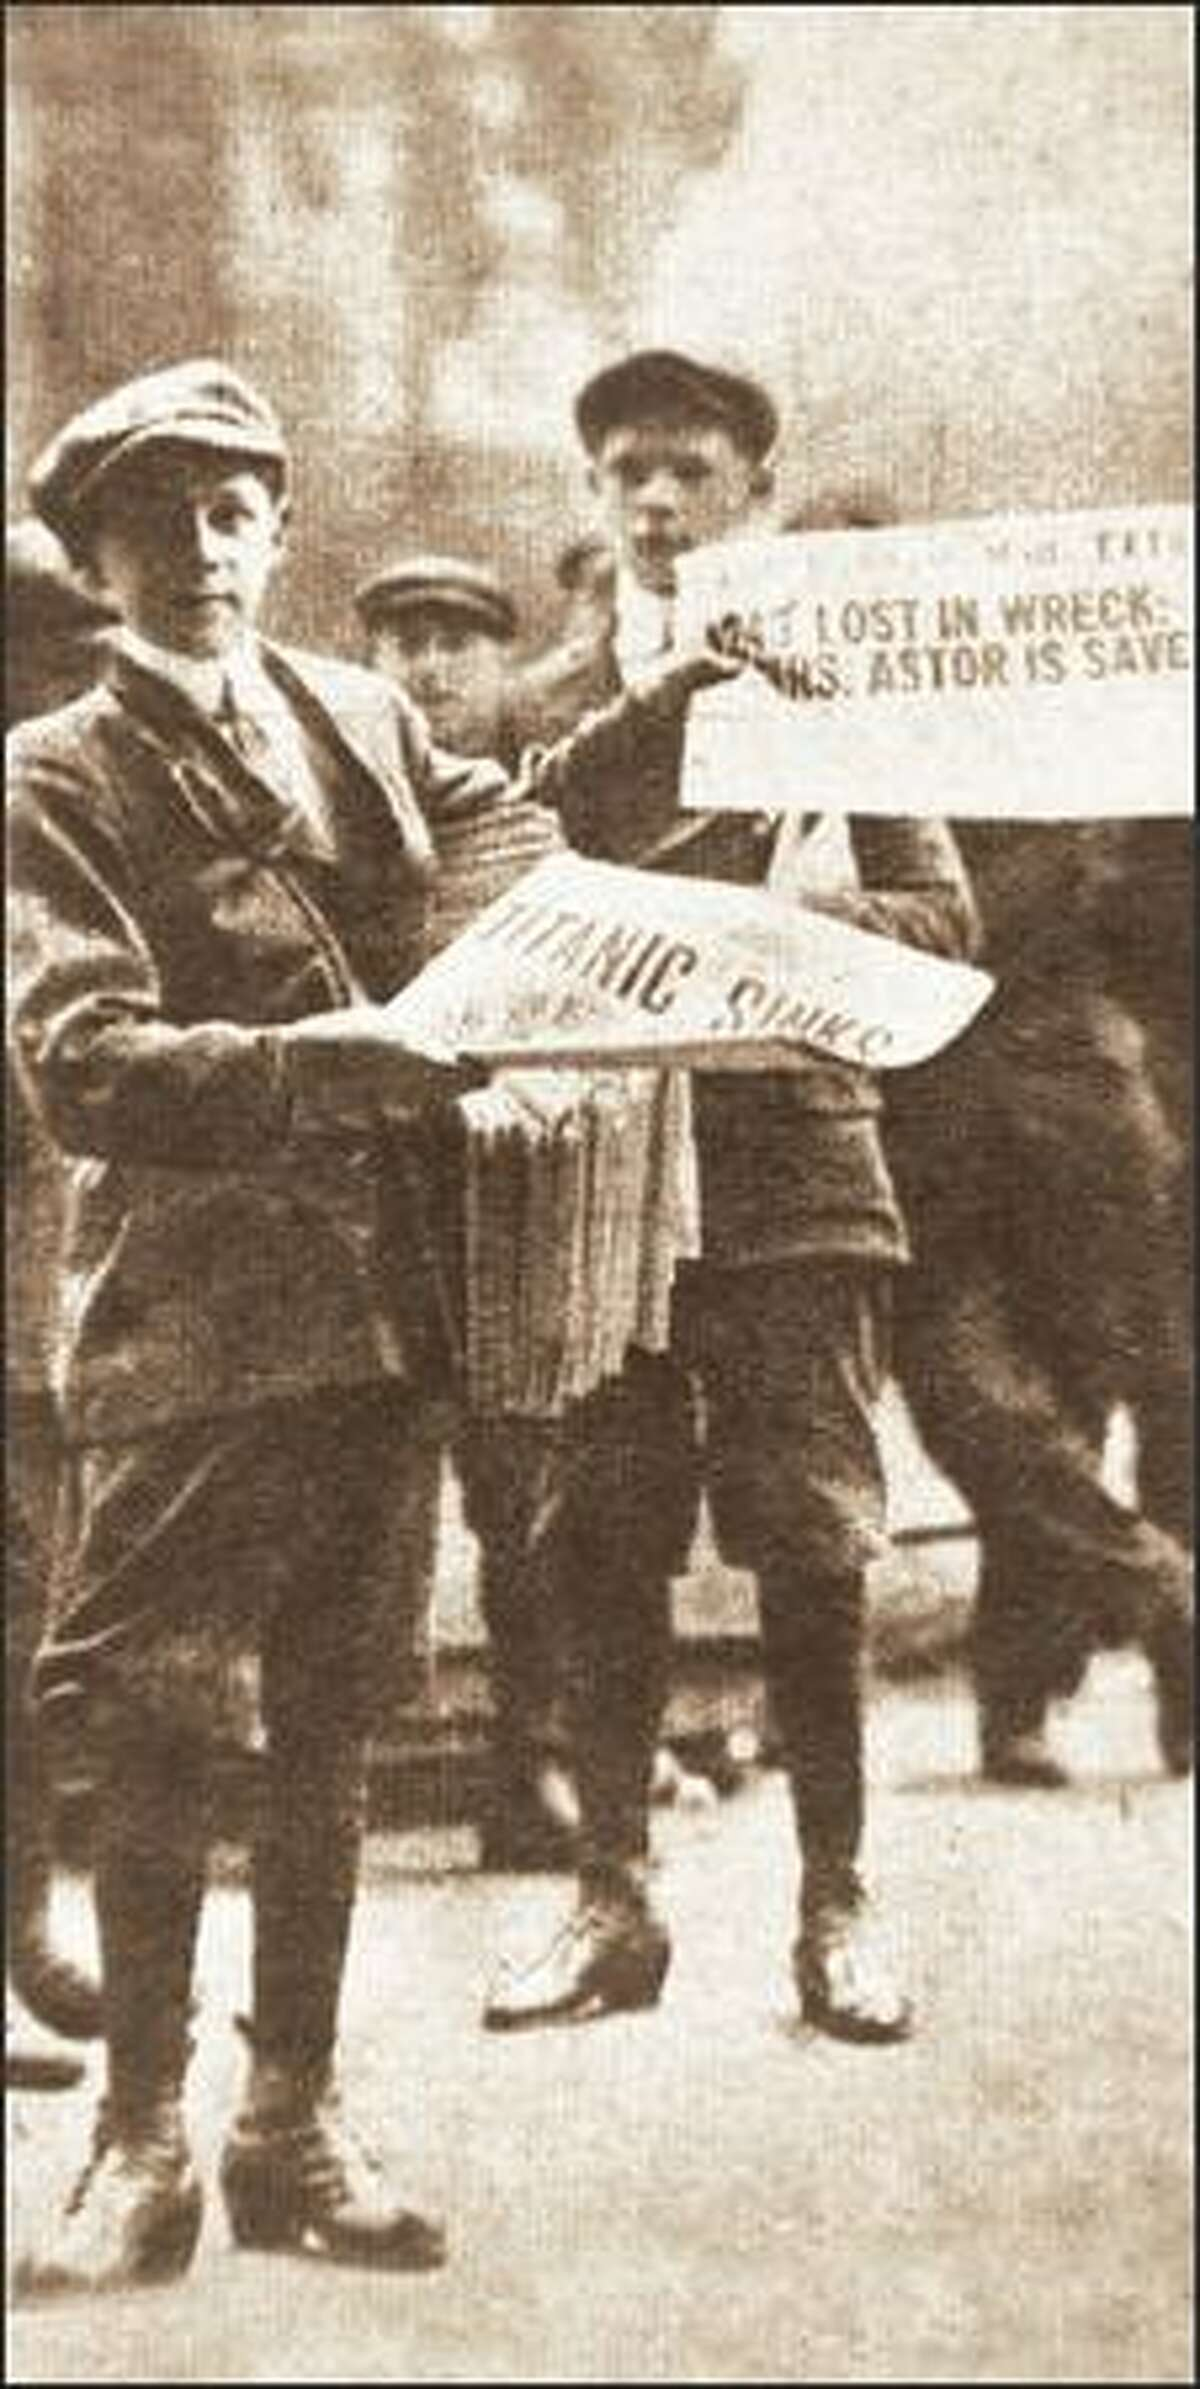 A historical photo shows newsboys selling editions that carried the news of the Titanic's sinking.